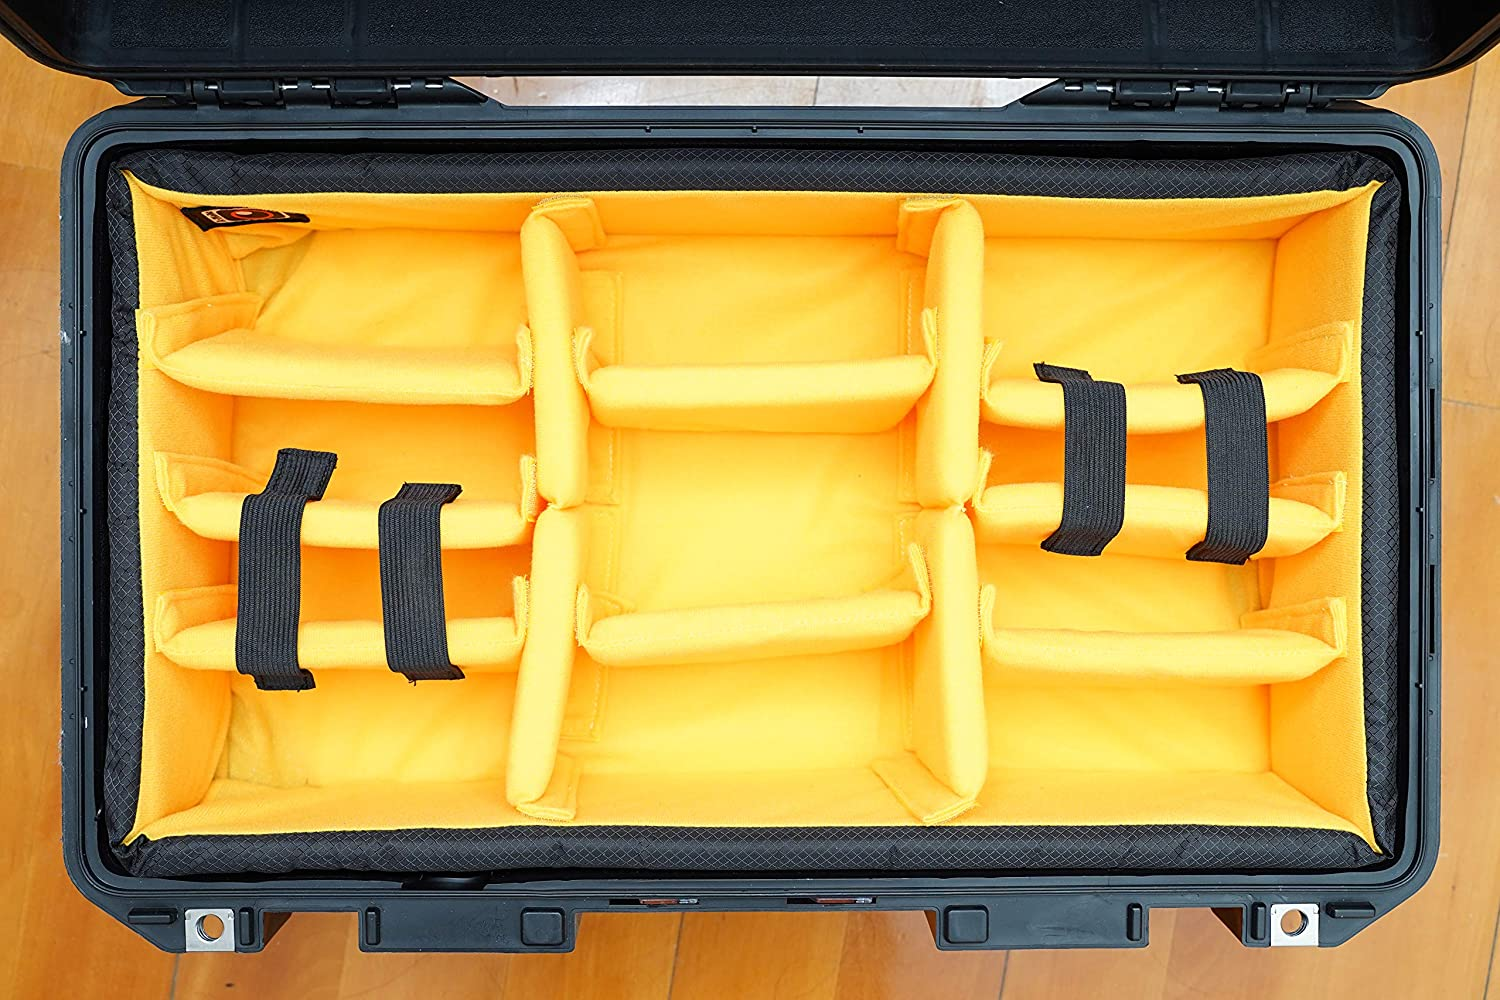 /… N0 case Yellow A-Mode Padded Divider Set to fit Pelican1535 Air